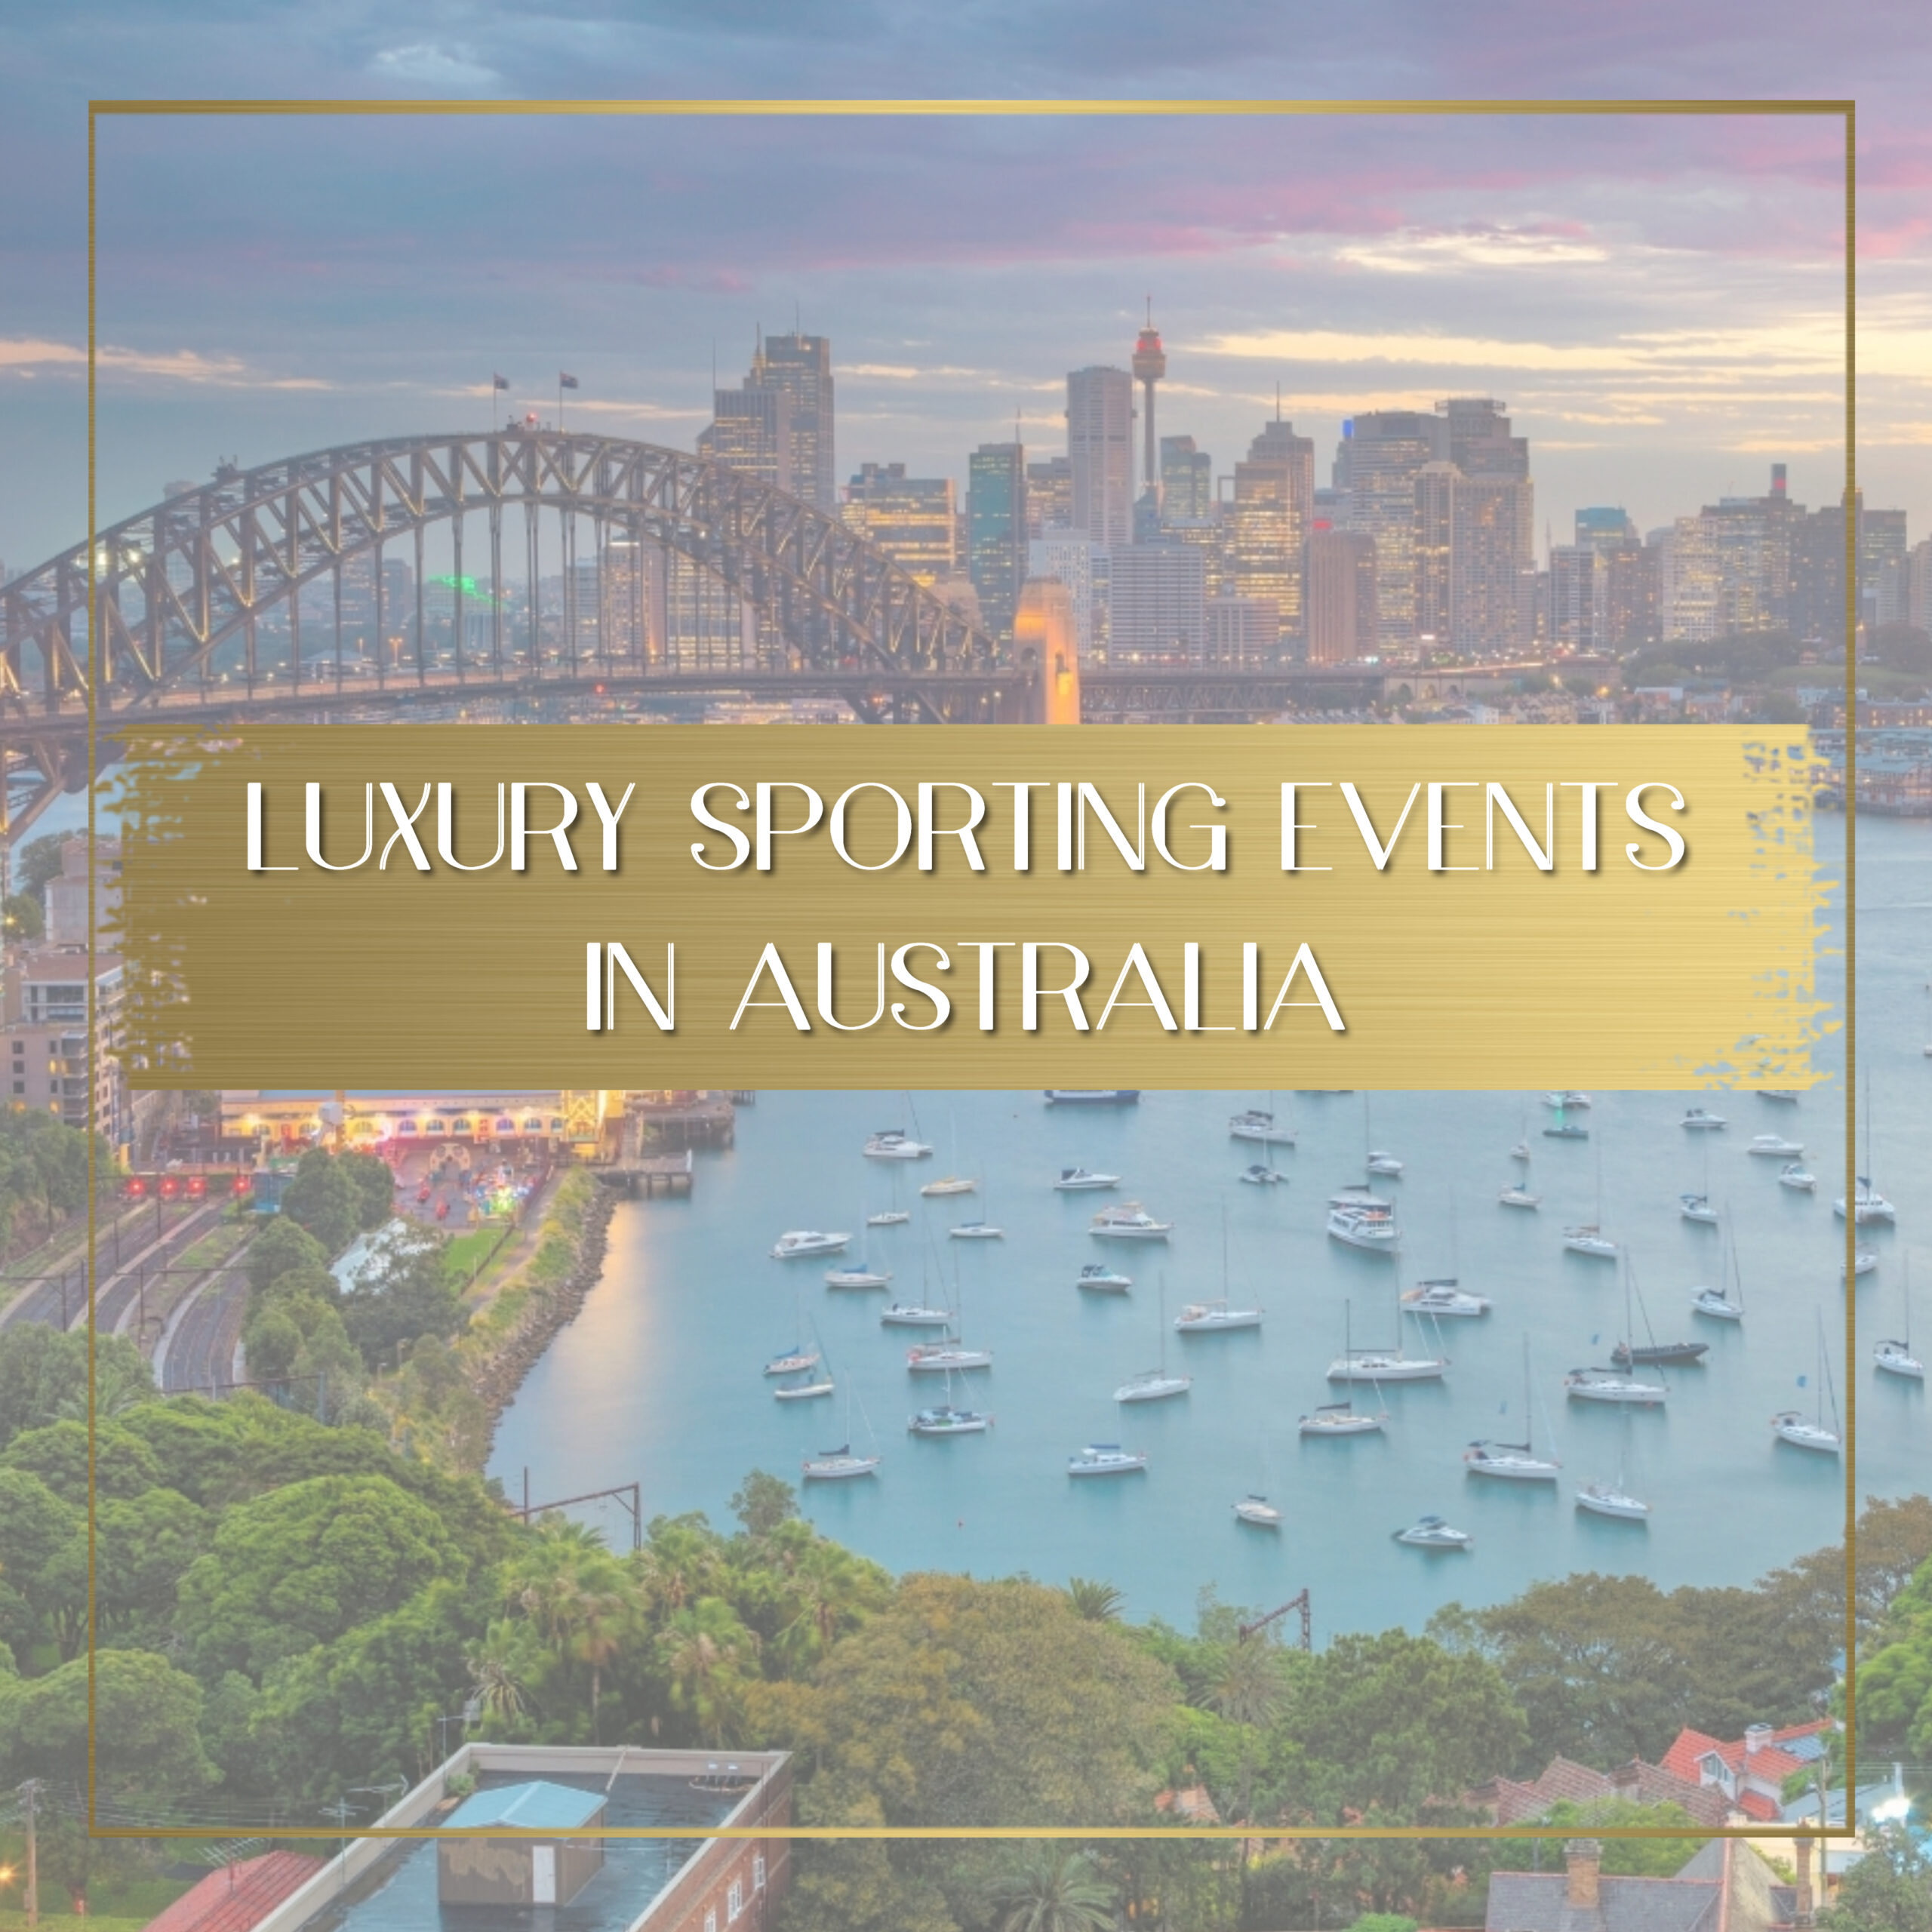 Luxury sporting events in Australia Feature